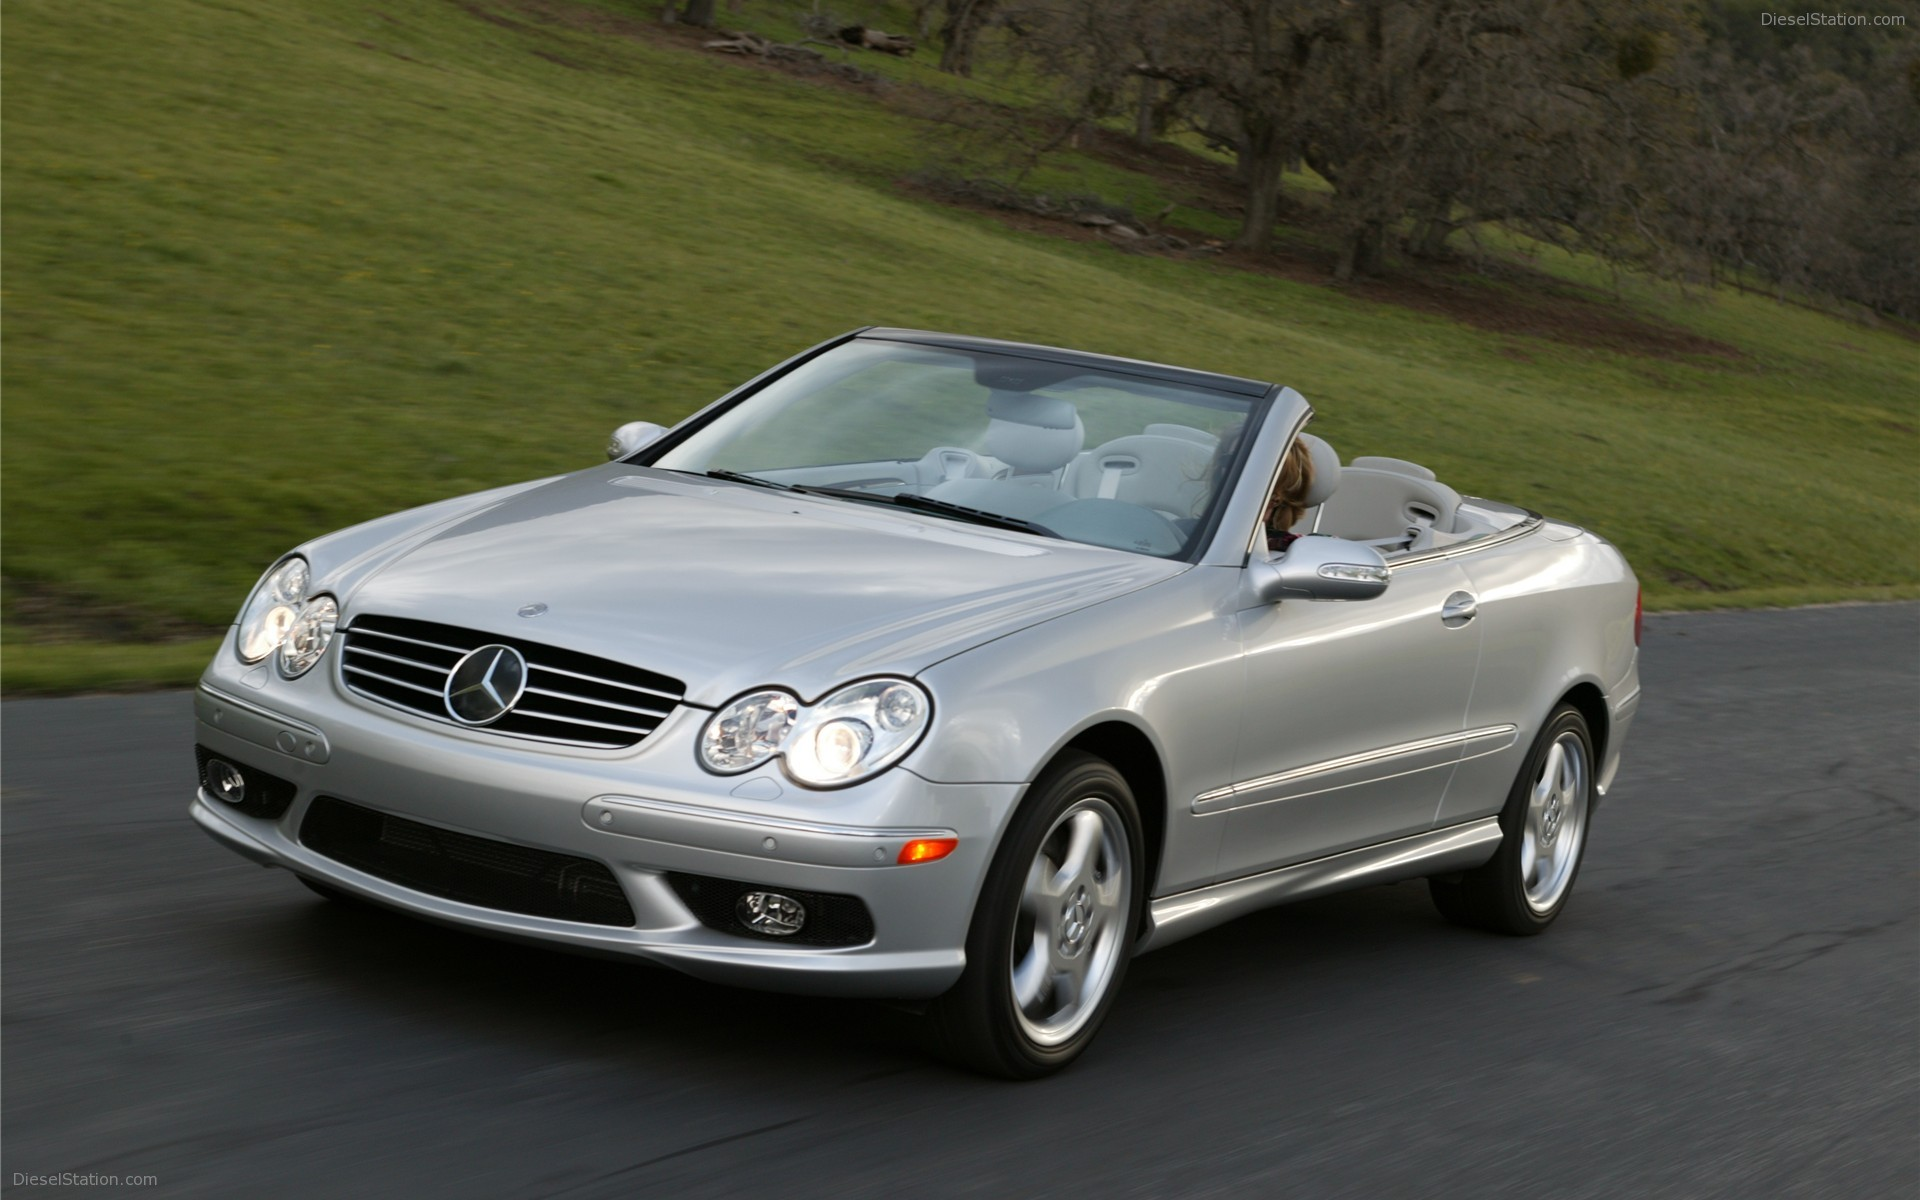 Mercedes benz clk 2015 review amazing pictures and for Mercedes benz new cars 2015